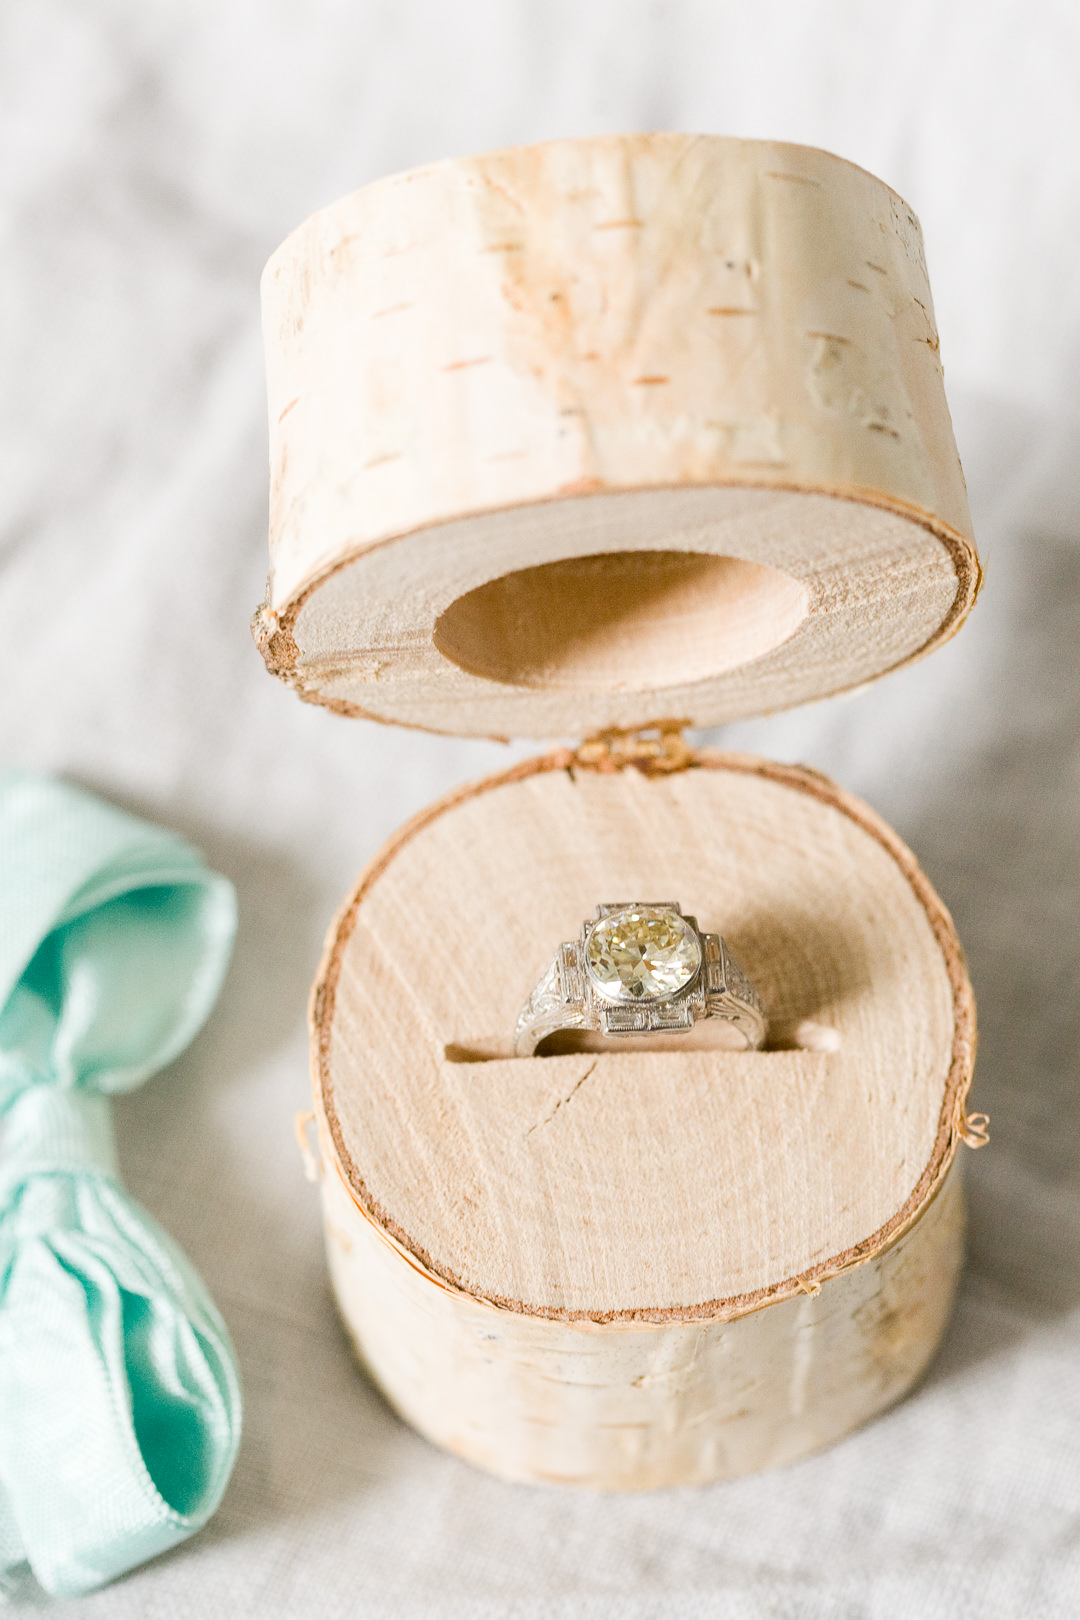 DIY Birch Log Ring Box -  http://ruffledblog.com/diy-birch-log-ring-box/